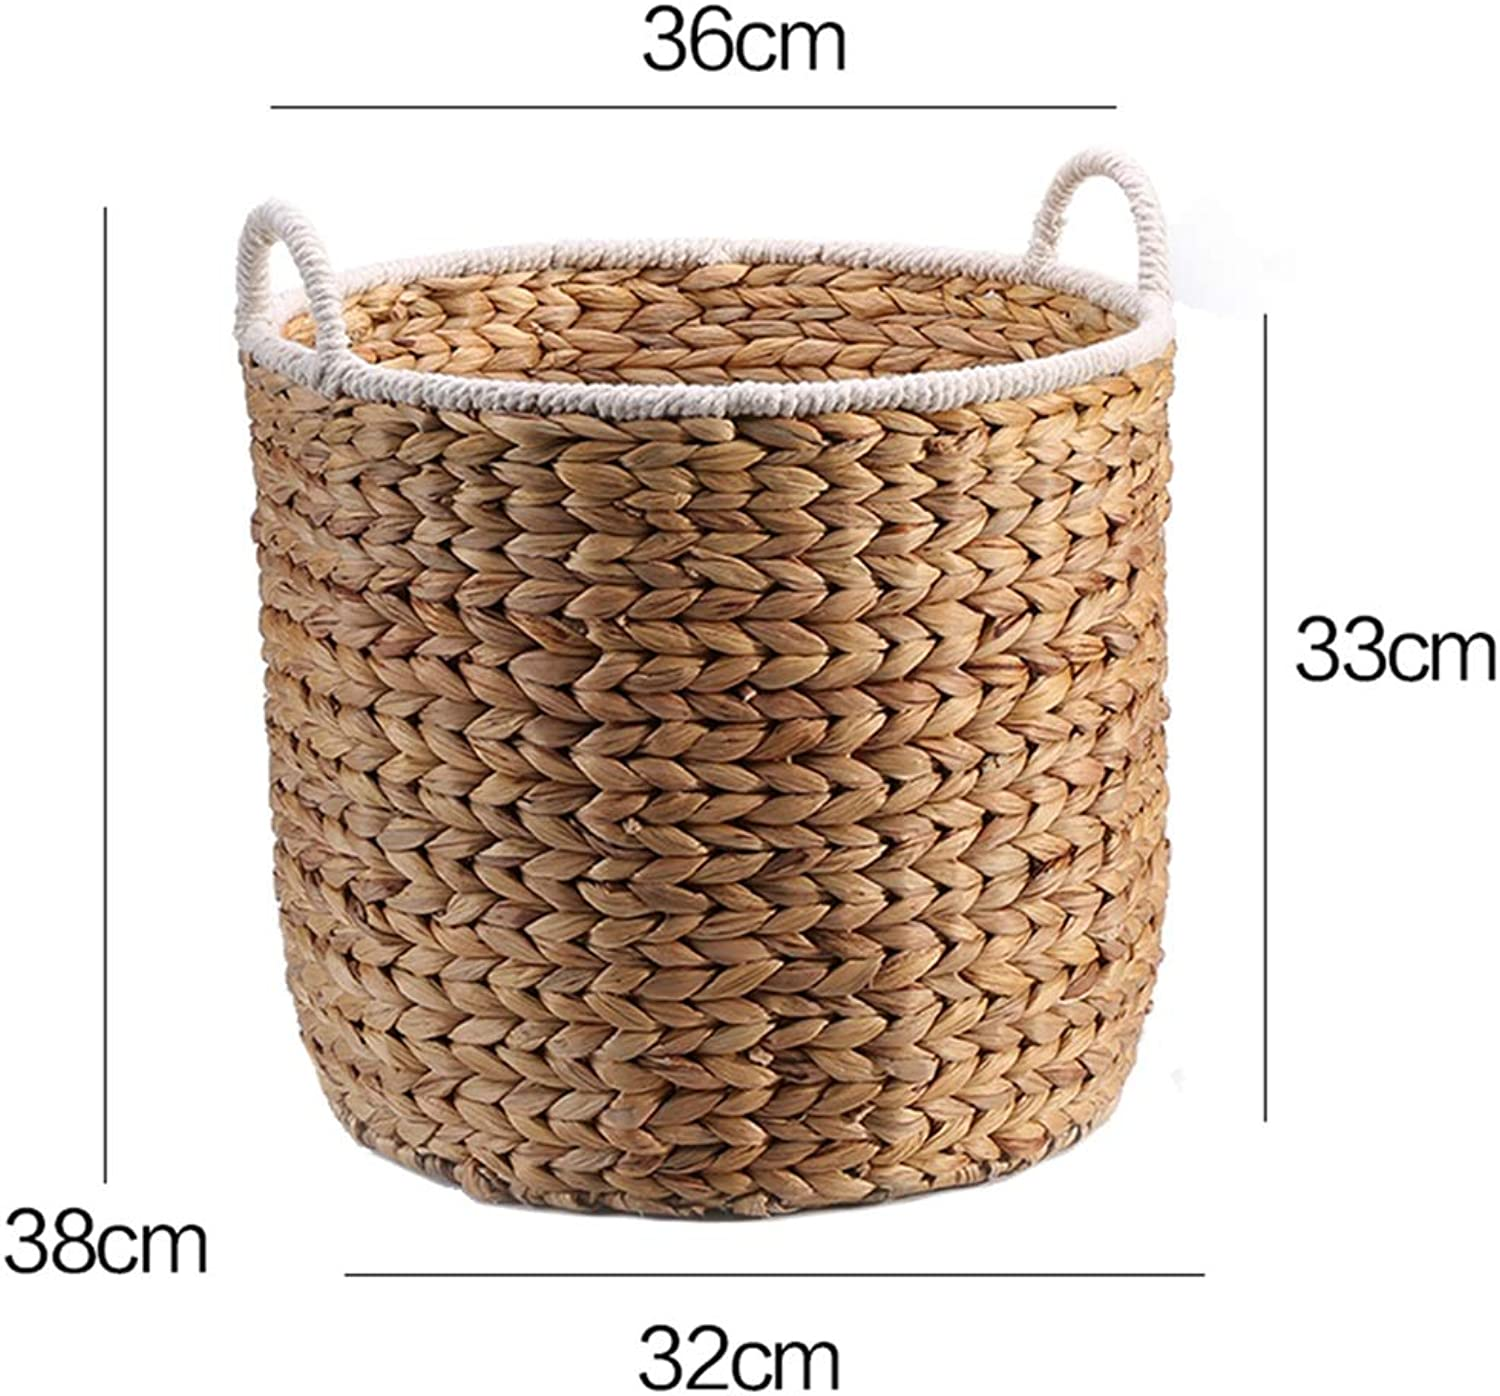 ZHANGQIANG Storage Basket Laundry Basket Rattan Laundry Hamper Multifunctional with Lid Hollow Household Storage Basket Wrought (color, Size   Large)